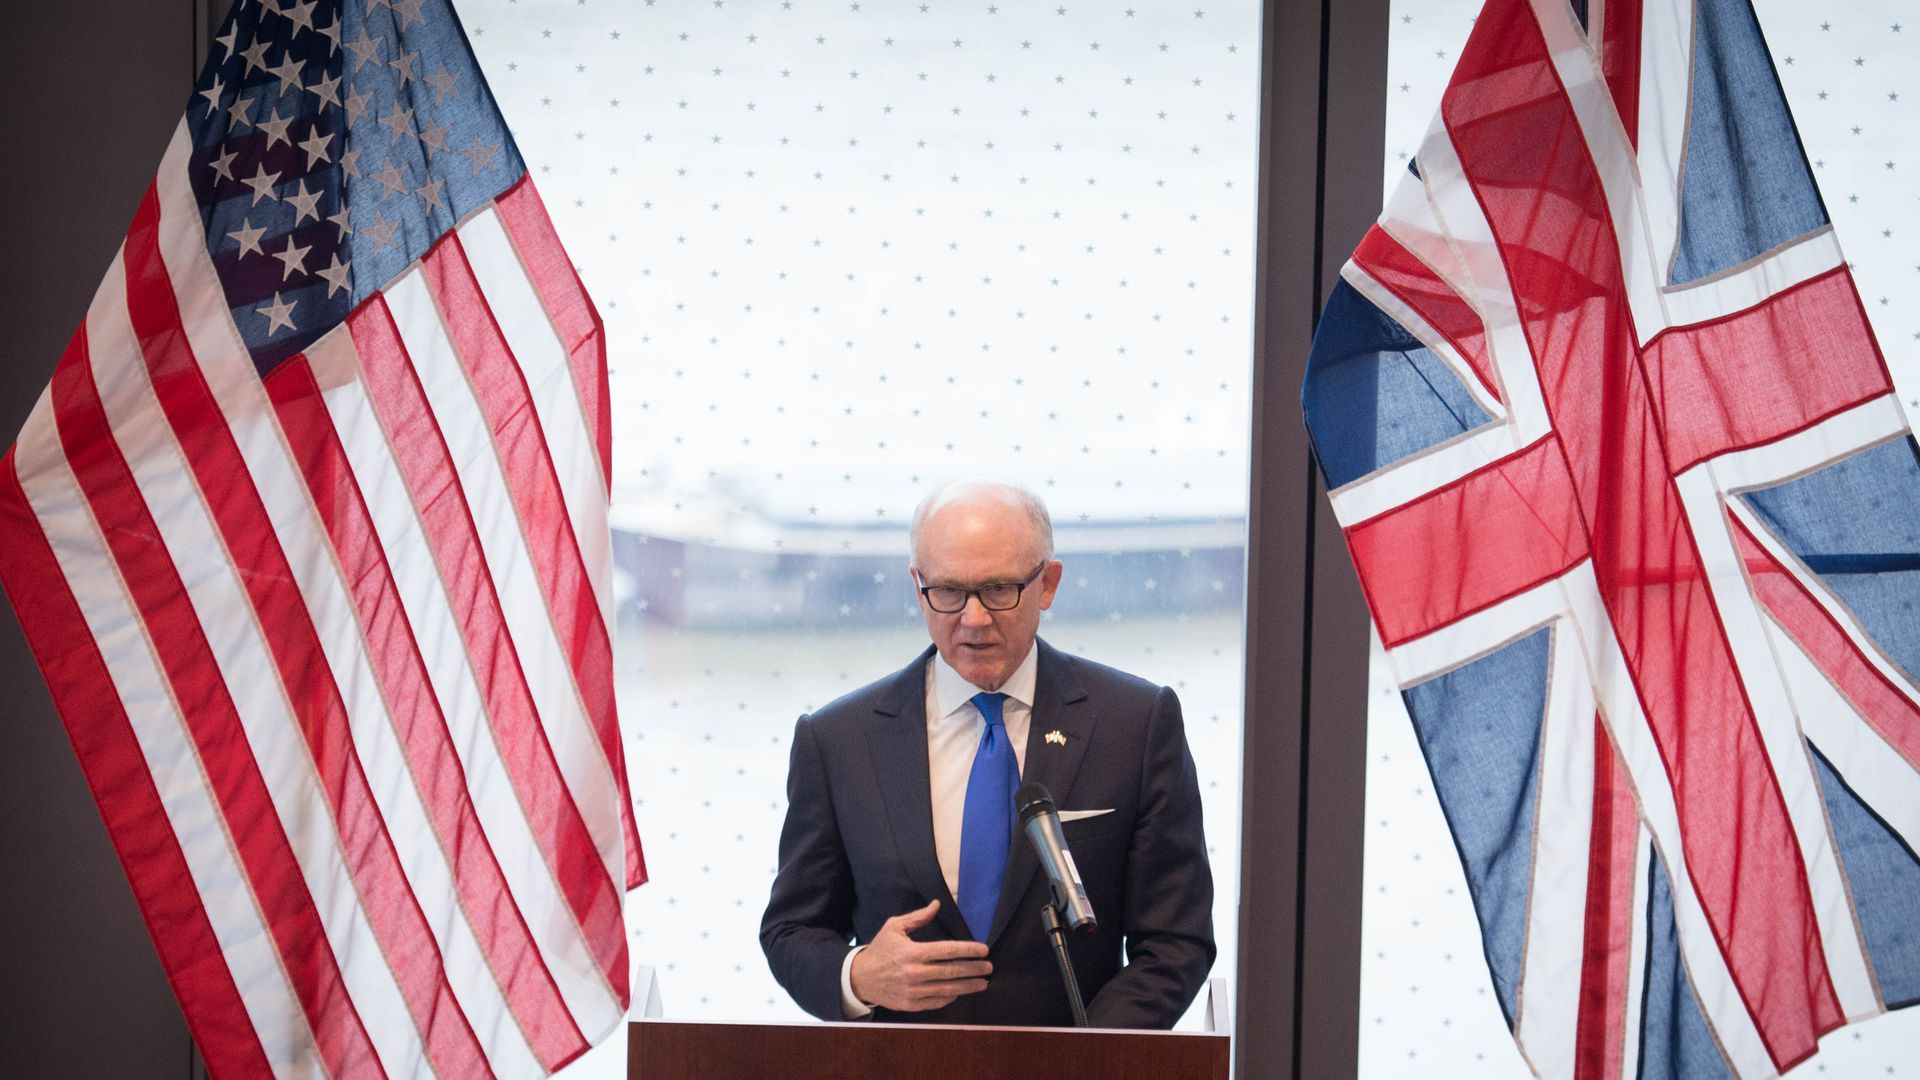 Woody Johnson in between an American and British flag